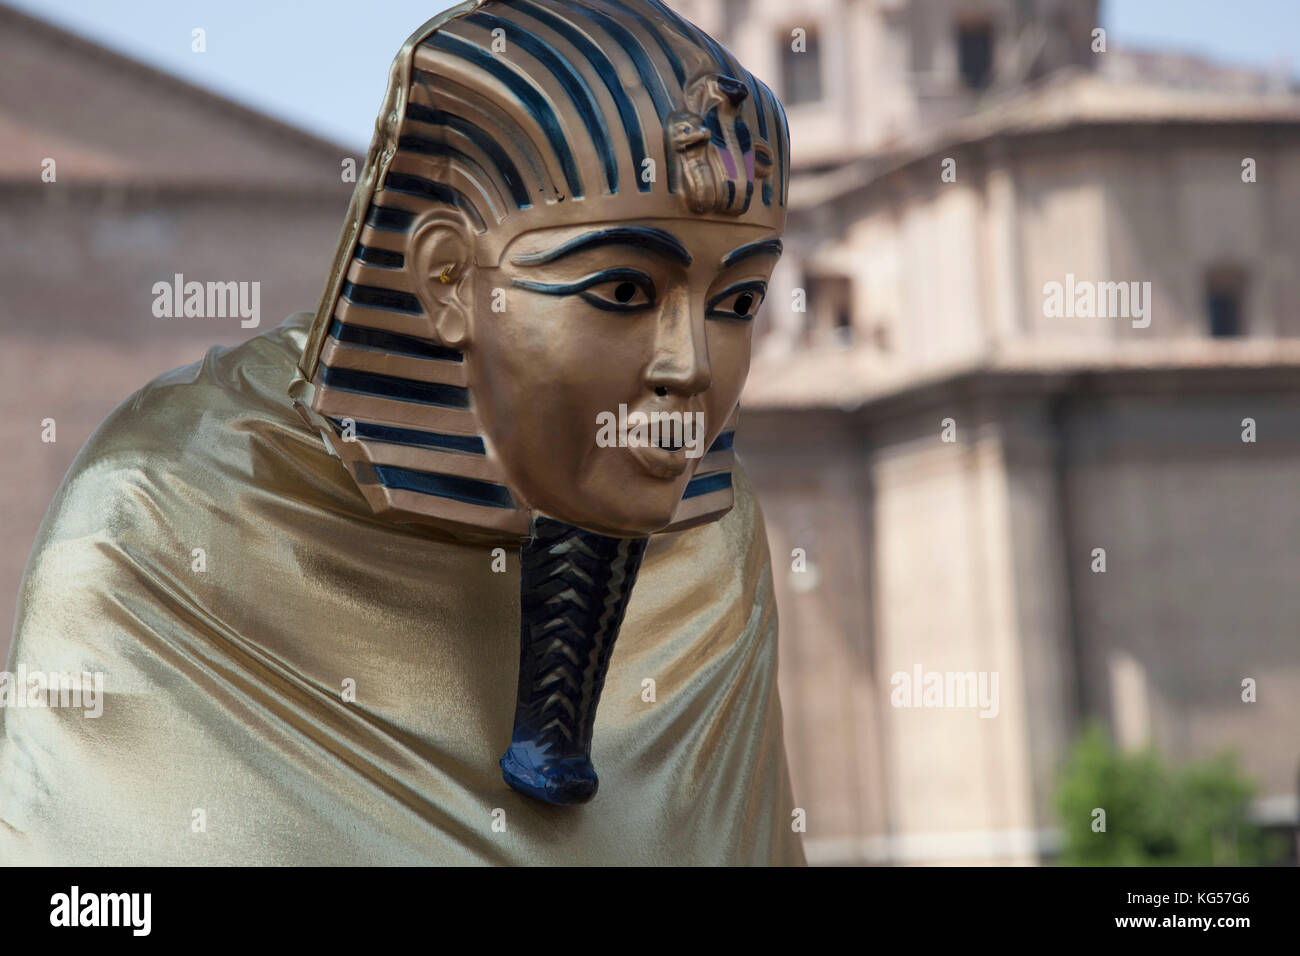 A performance artist dresses as an Egyptian Sphinx on the grounds of the Roman Forum in Rome, Italy - Stock Image